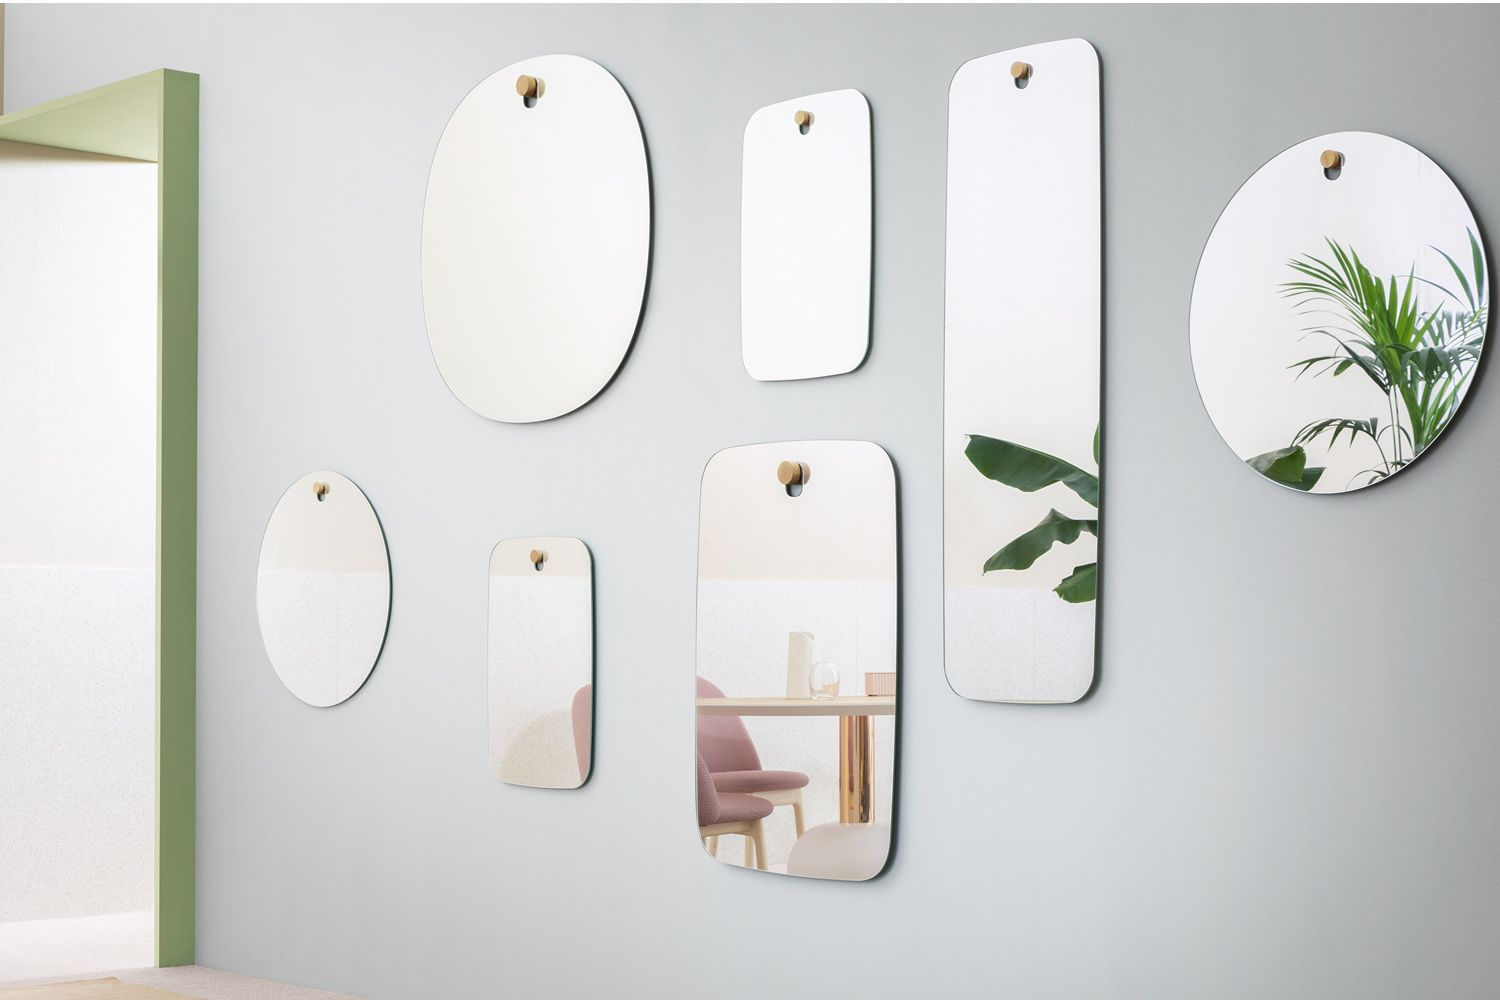 Design mirrors, available in different dimensions